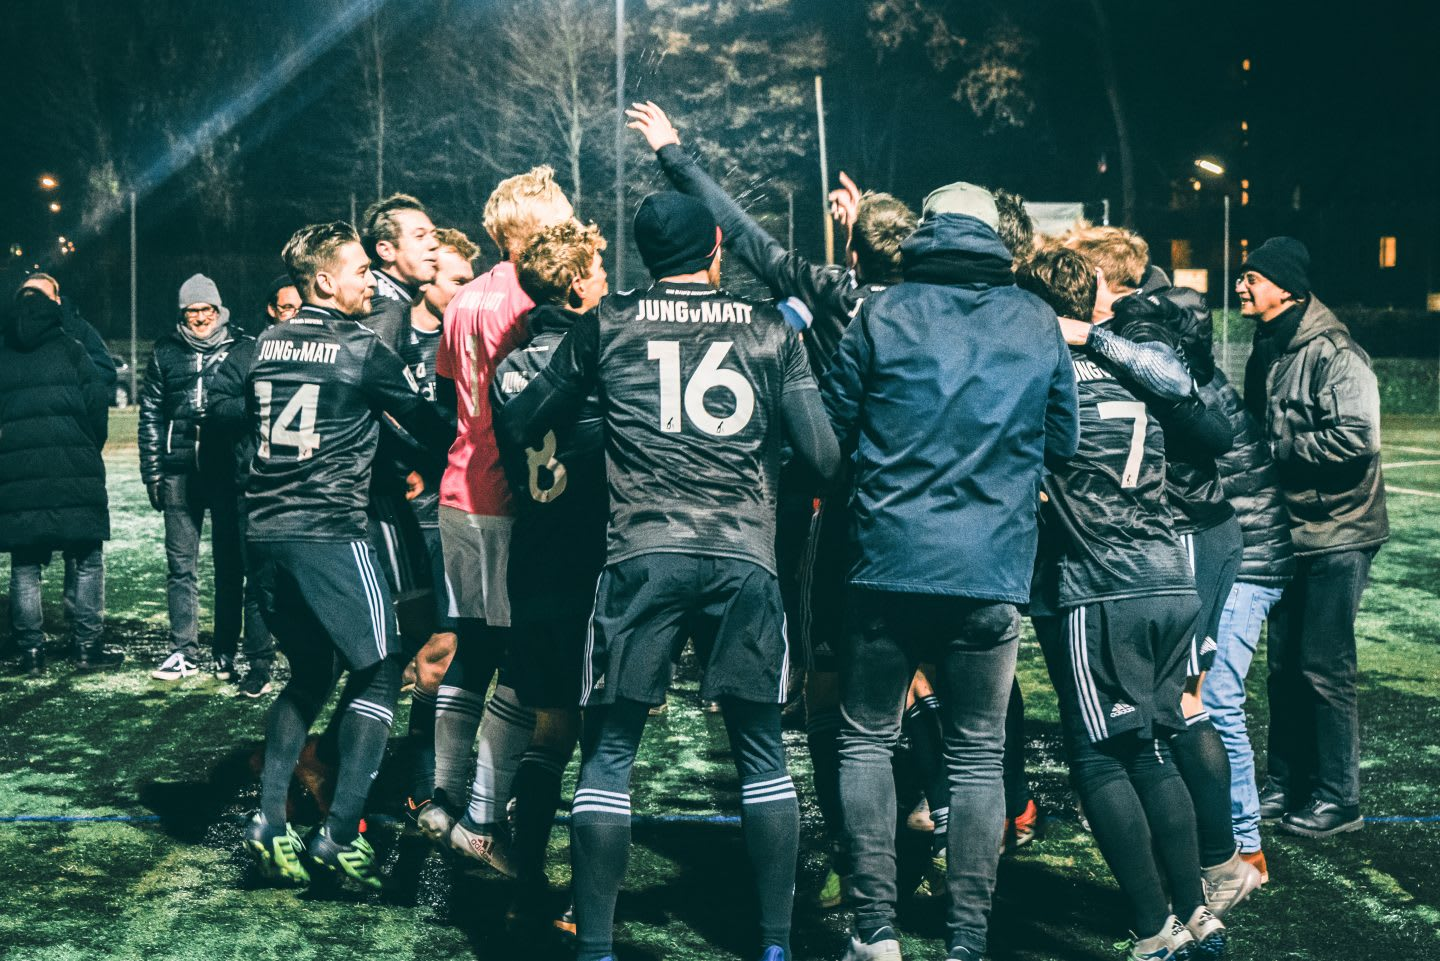 JvM soccer team celebrating on the field. How to build a creative workplace culture, JvM, workplace, collaboration, creativity, team-building, GamePlan A